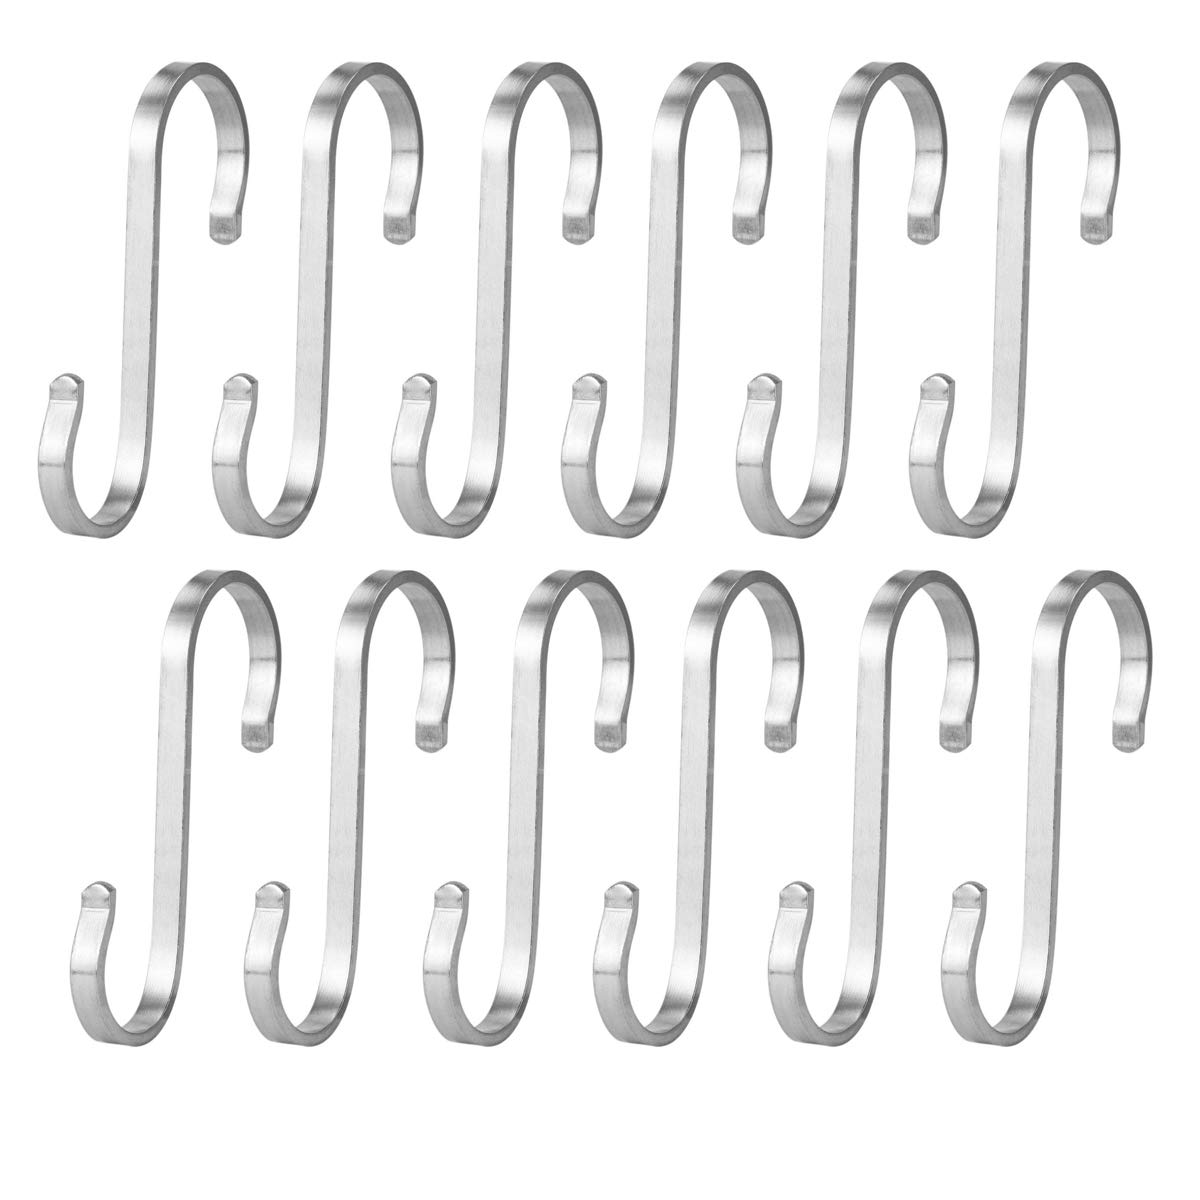 Rannb Stainless Steel Flat S Hanging Hooks Rack Hooks Metal Utility Hooks for Kitchen Bathroom Workshop and Office -Pack of 12 (22x32mm)